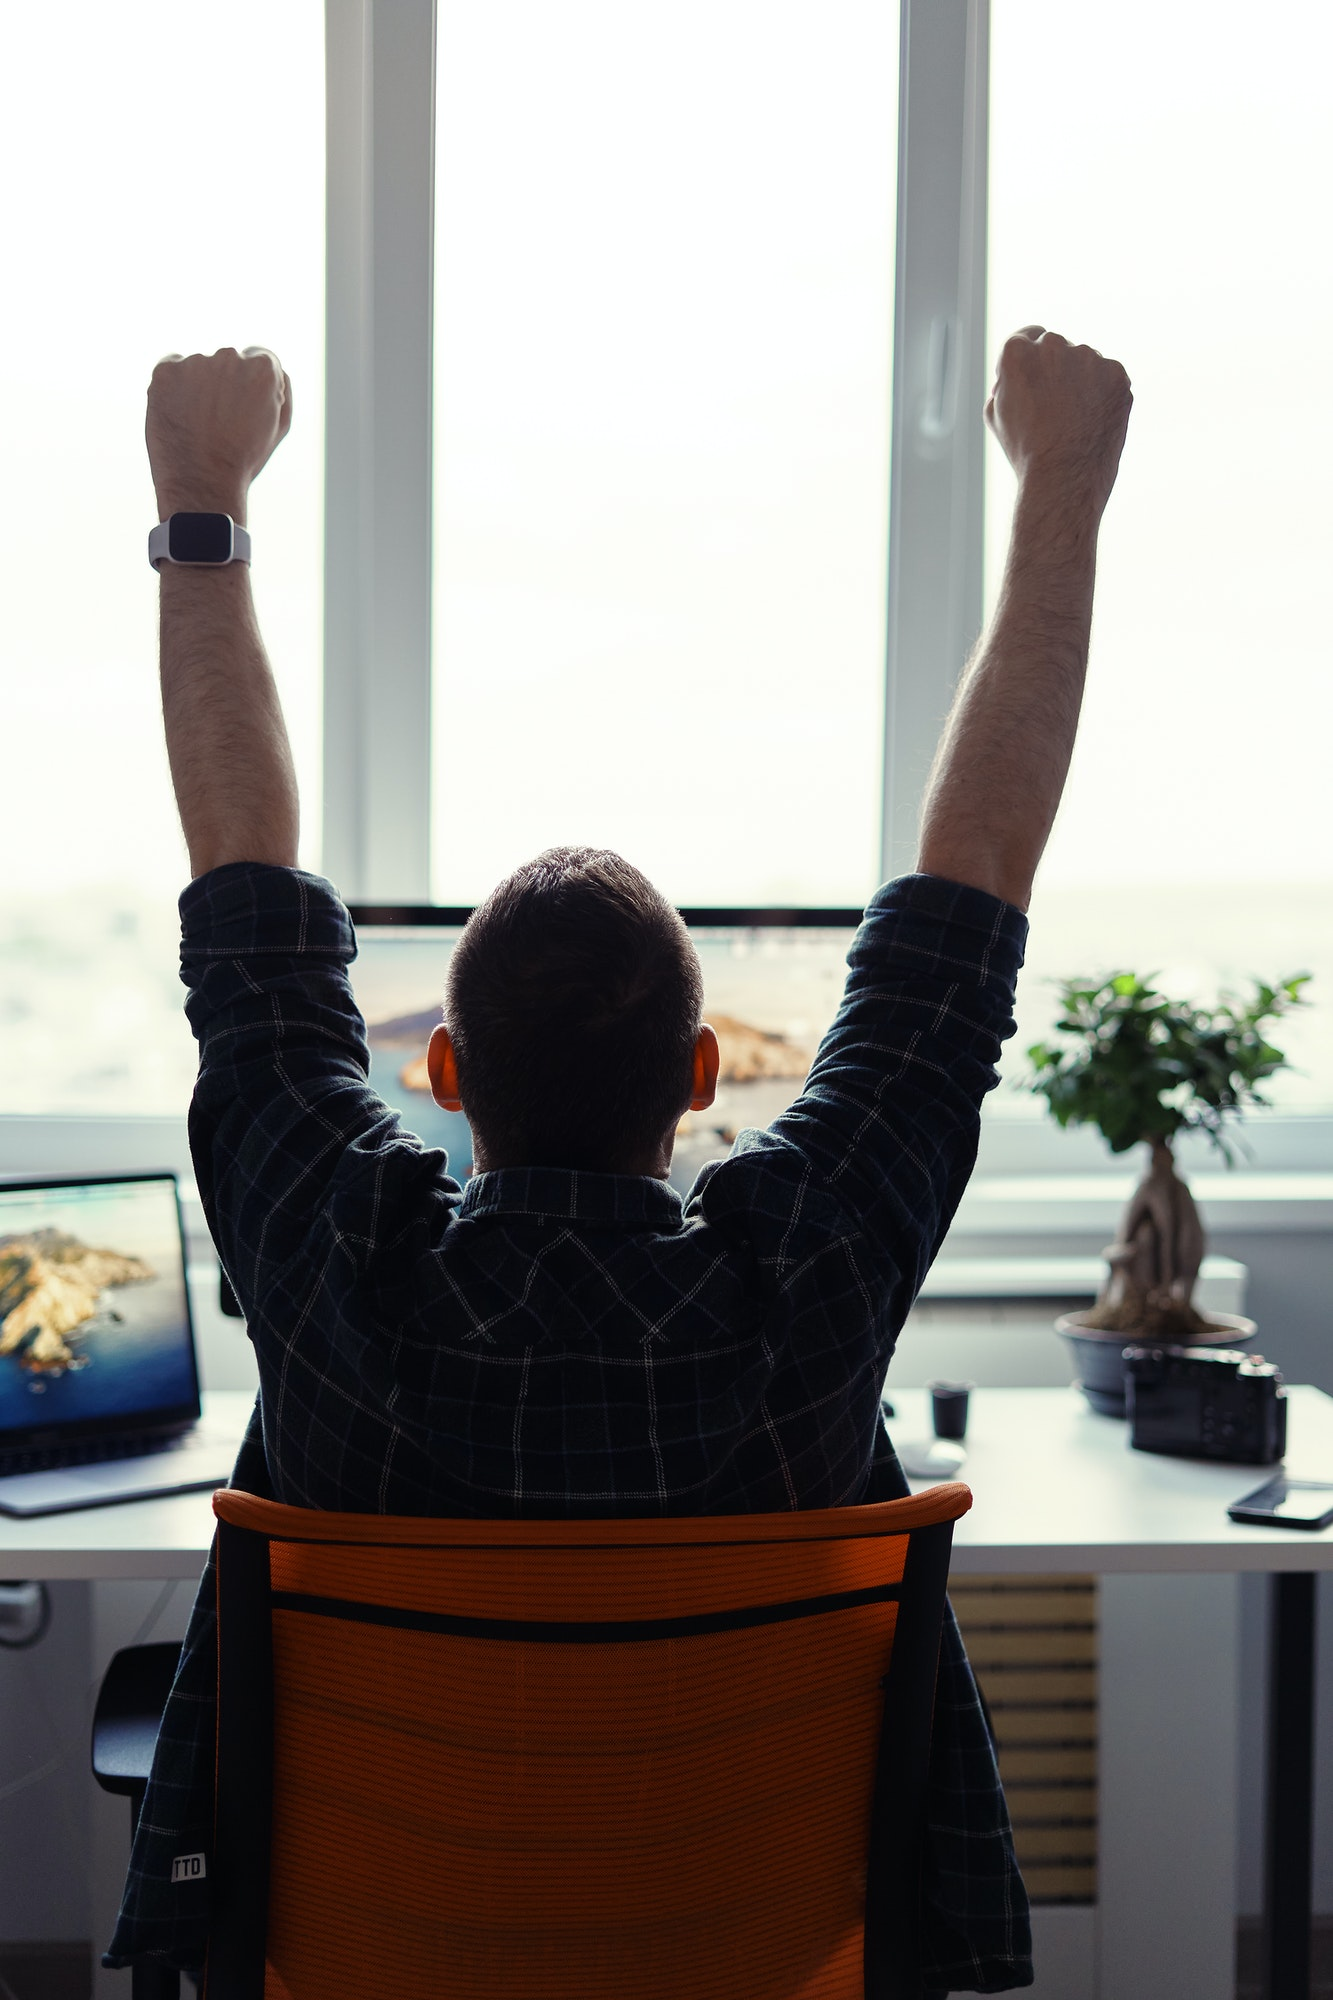 victorious-man-celebrating-his-success-in-his-work-place-1.jpg